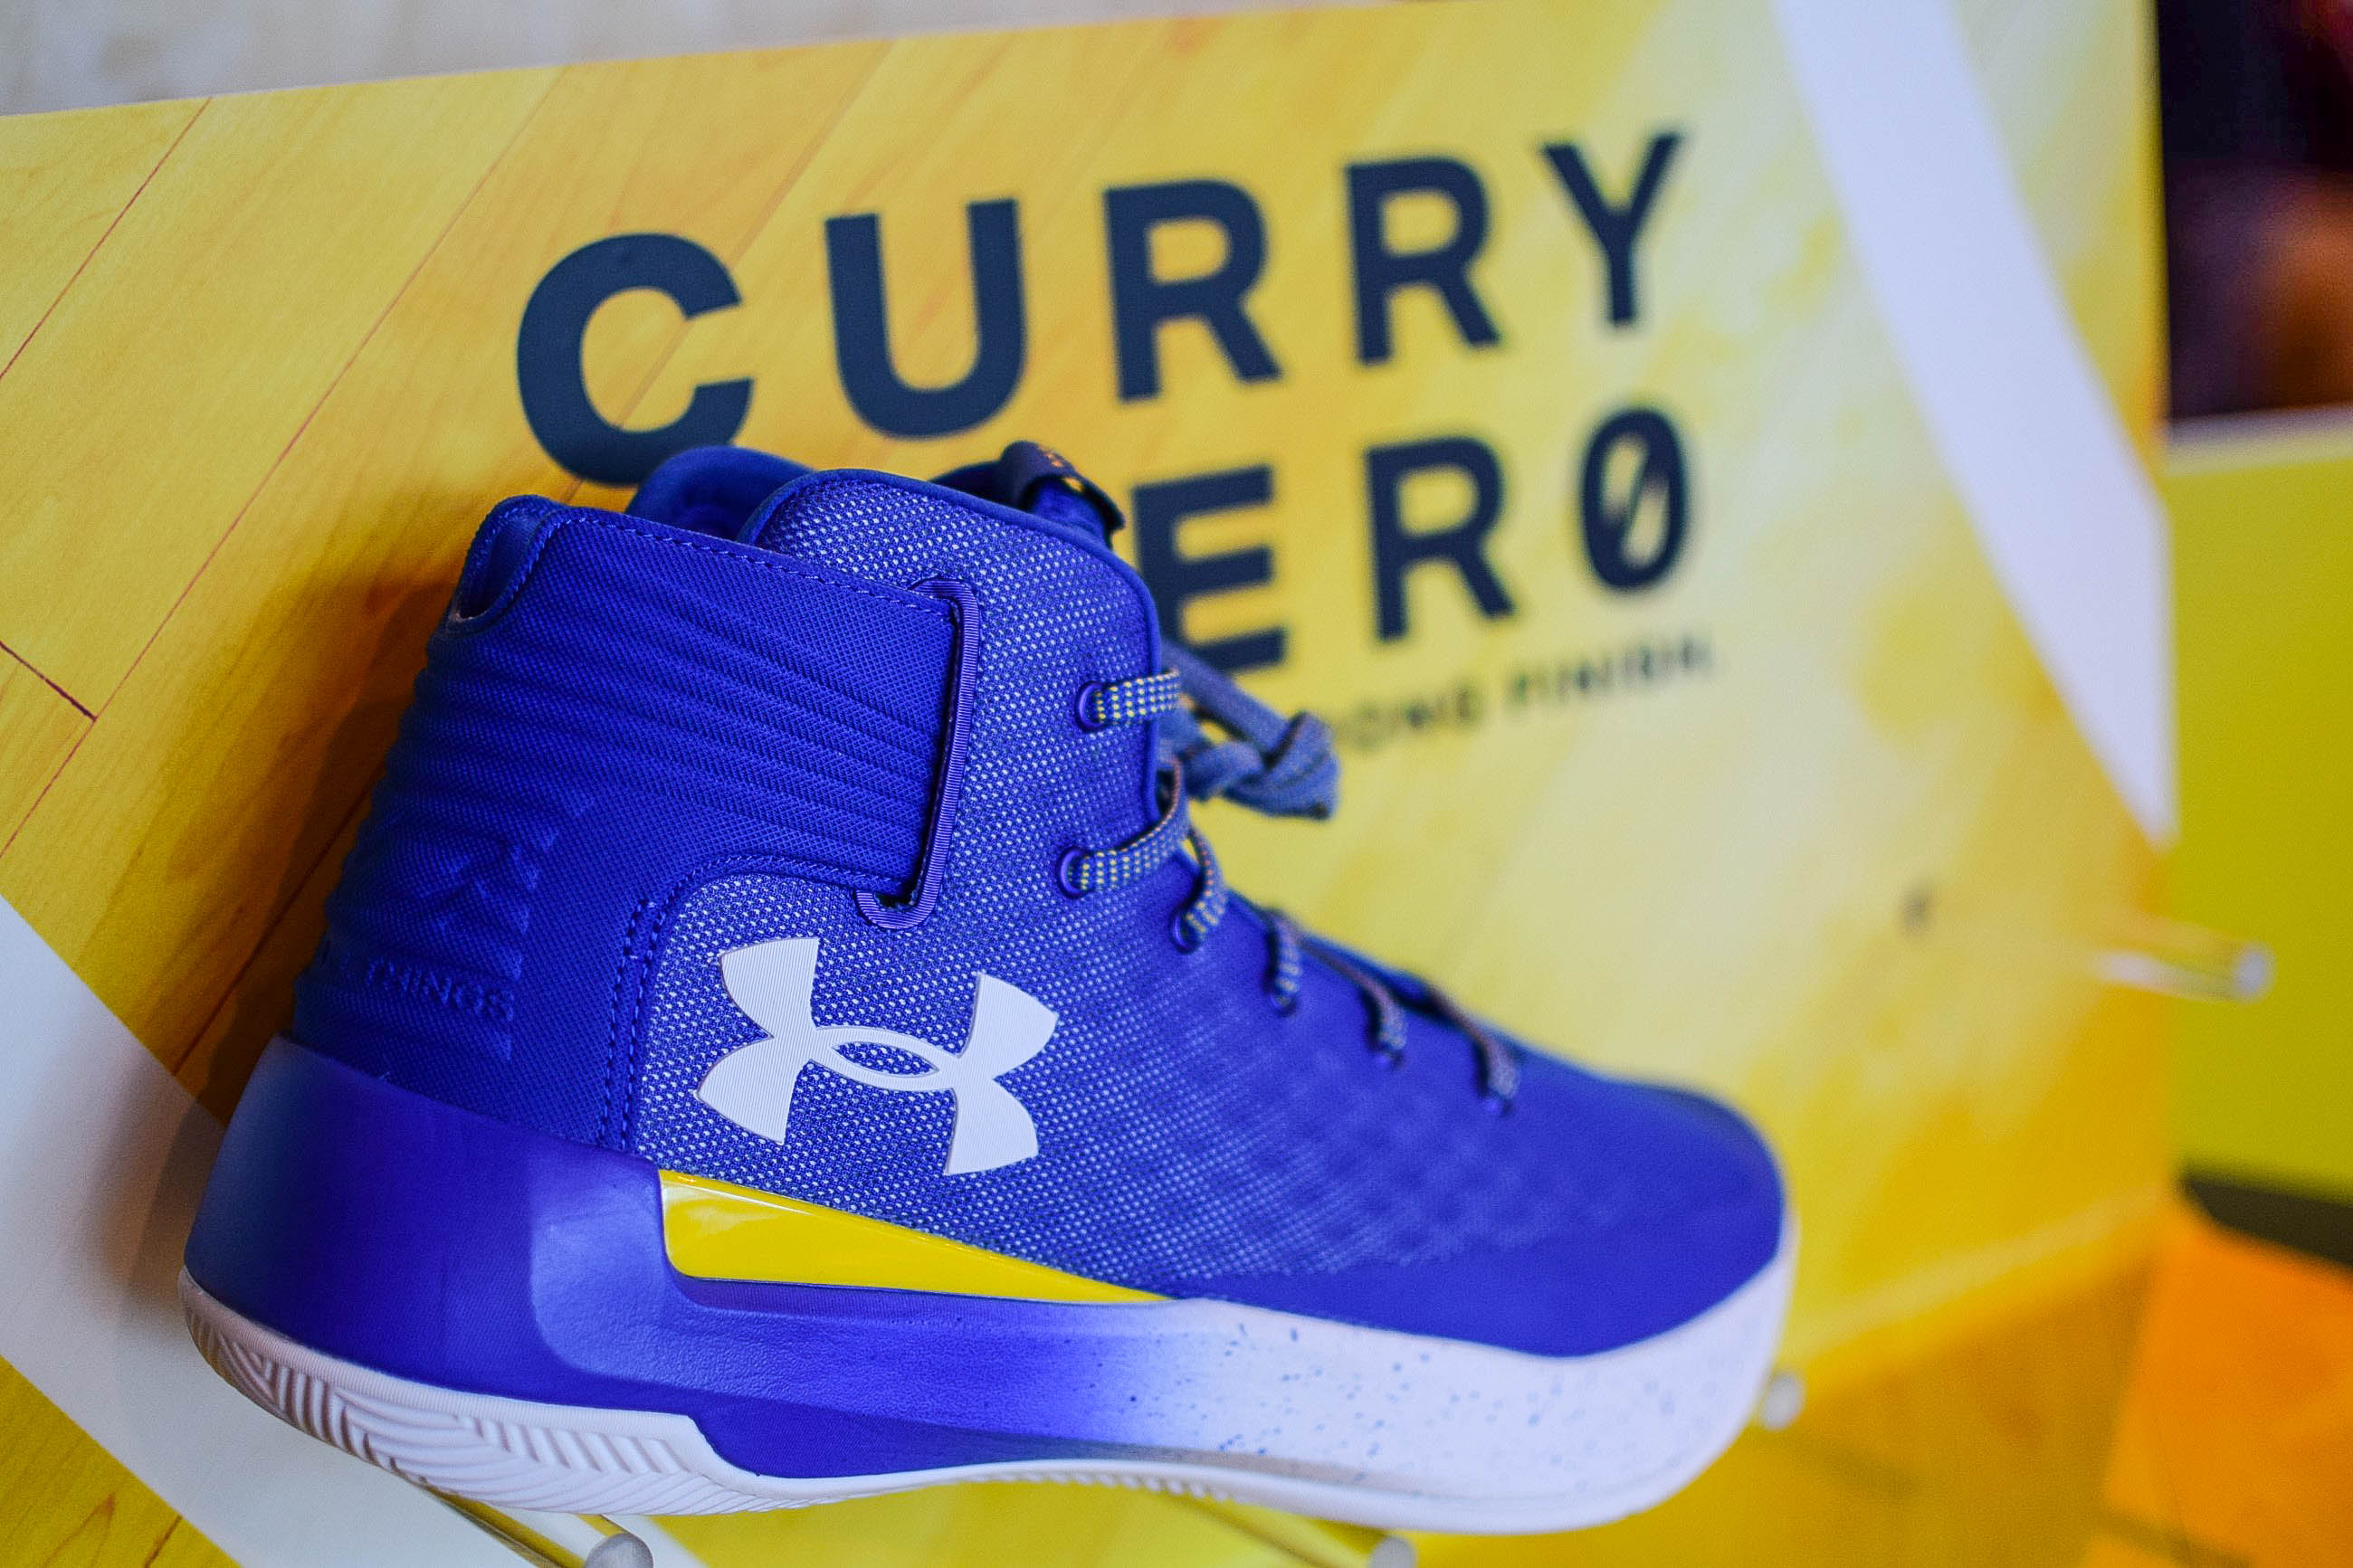 Under Armour successfully launches Curry 3ZER0 in the Philippines